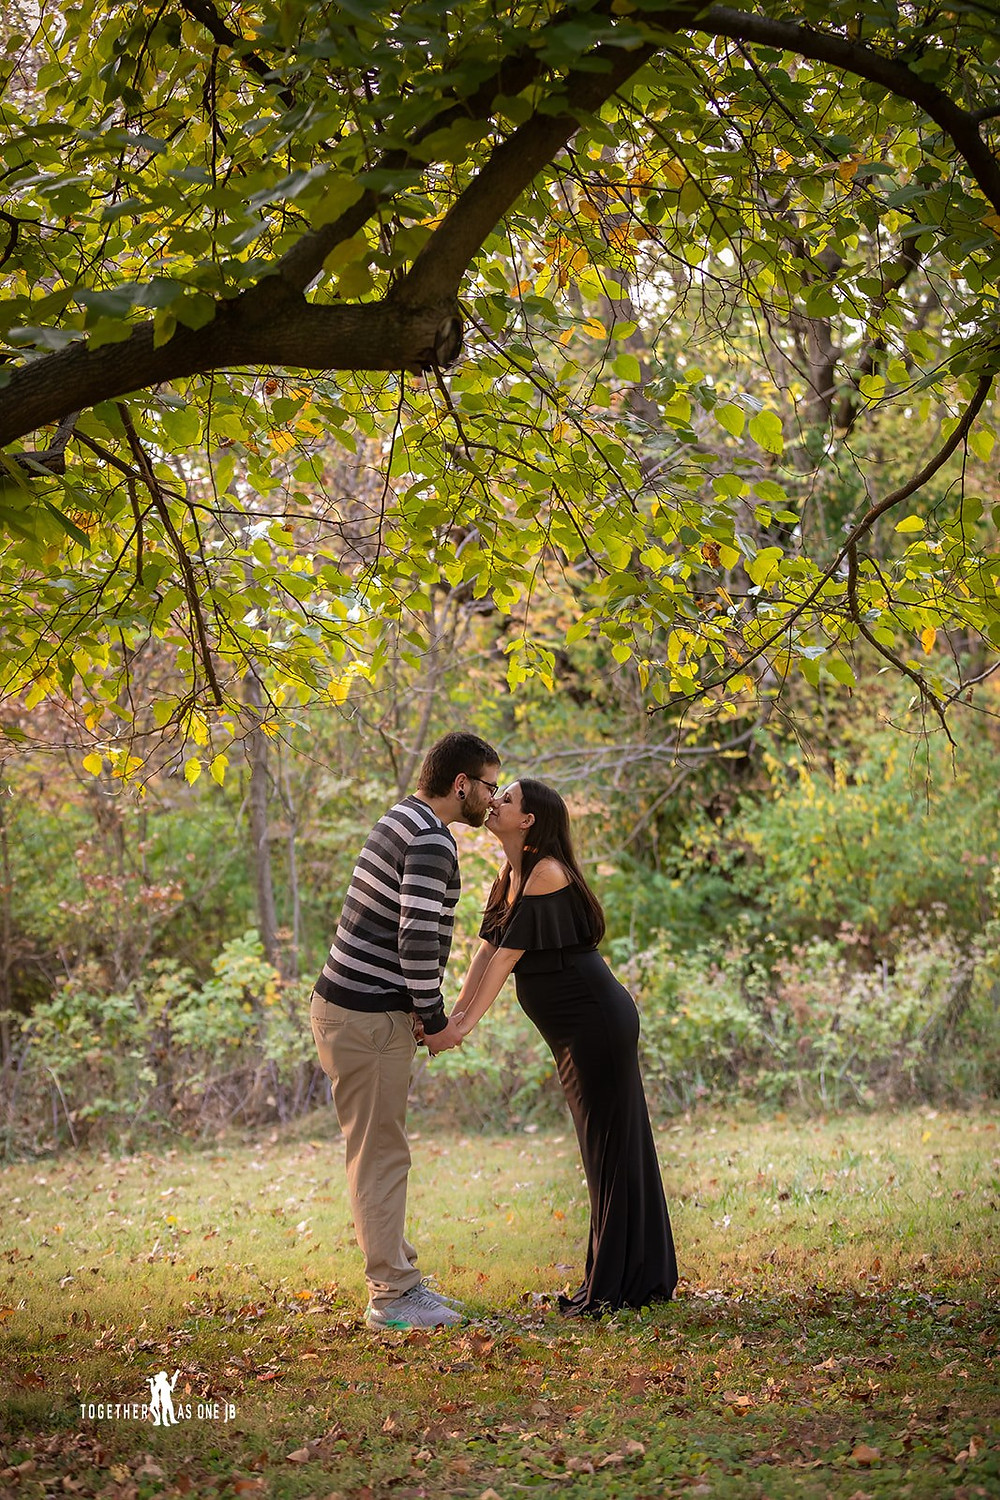 Cincinnati wedding photographer captures photograph of couple kissing under tree in the woods.